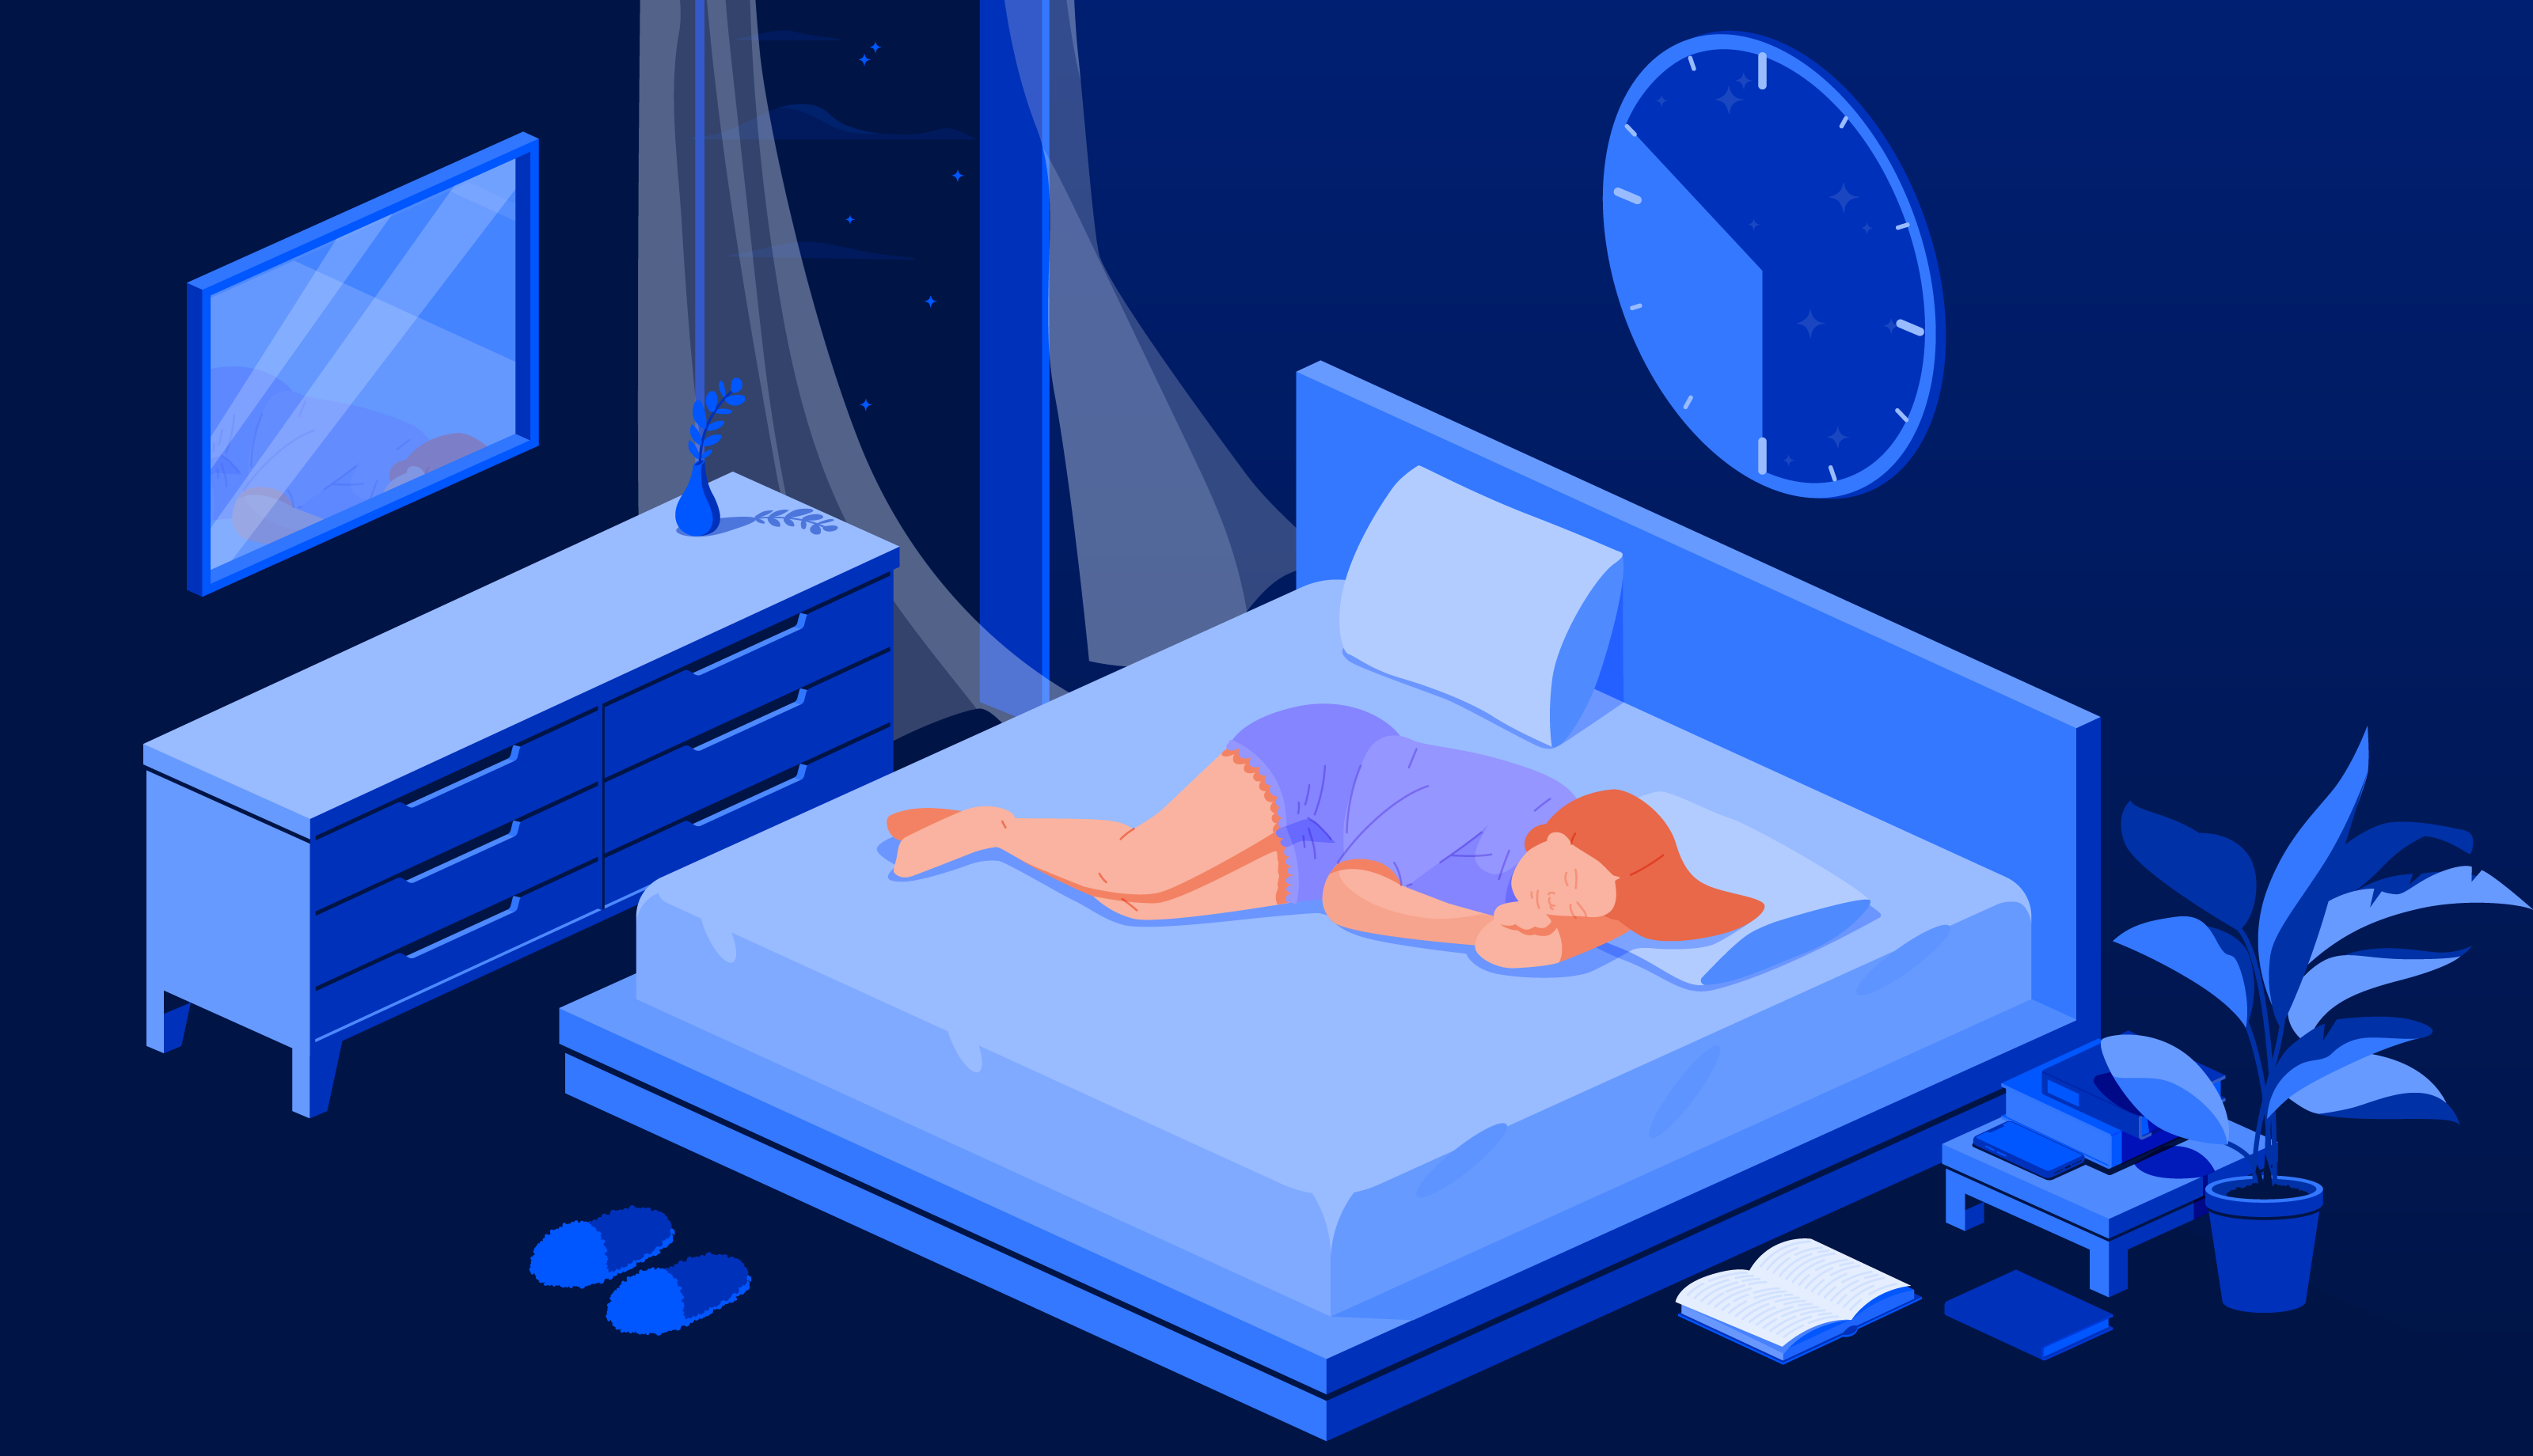 Biohacking Sleep And Insomnia: 9 Lifestyle And Diet Tricks